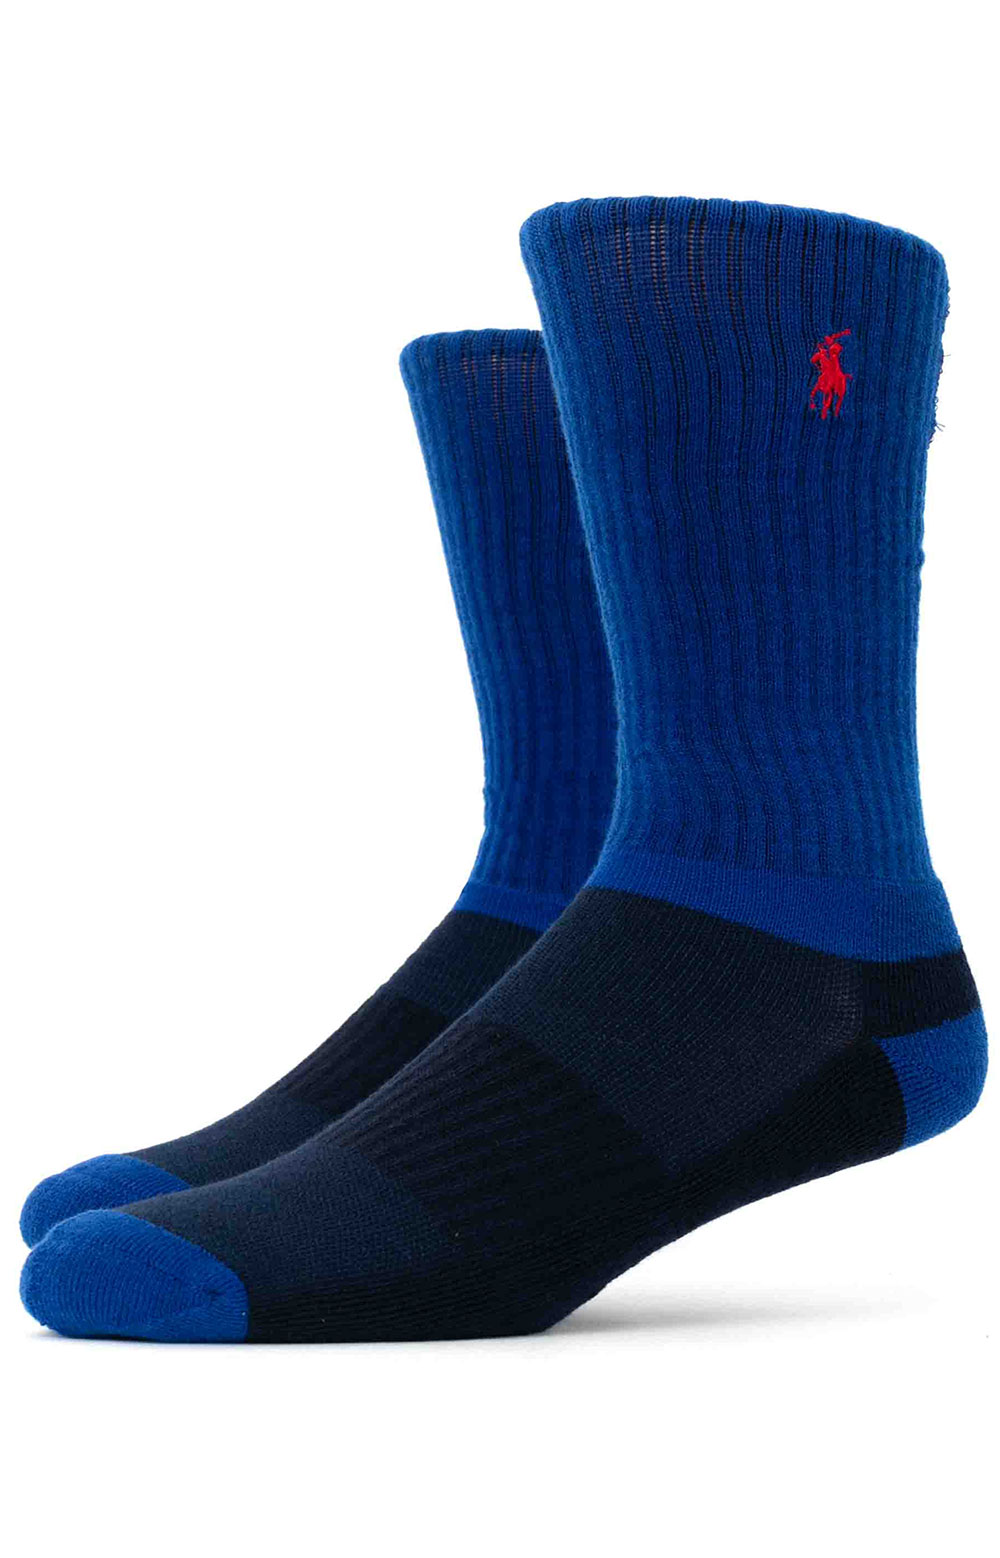 Colorblock Cushioned Crew Socks - 6 Pack 10